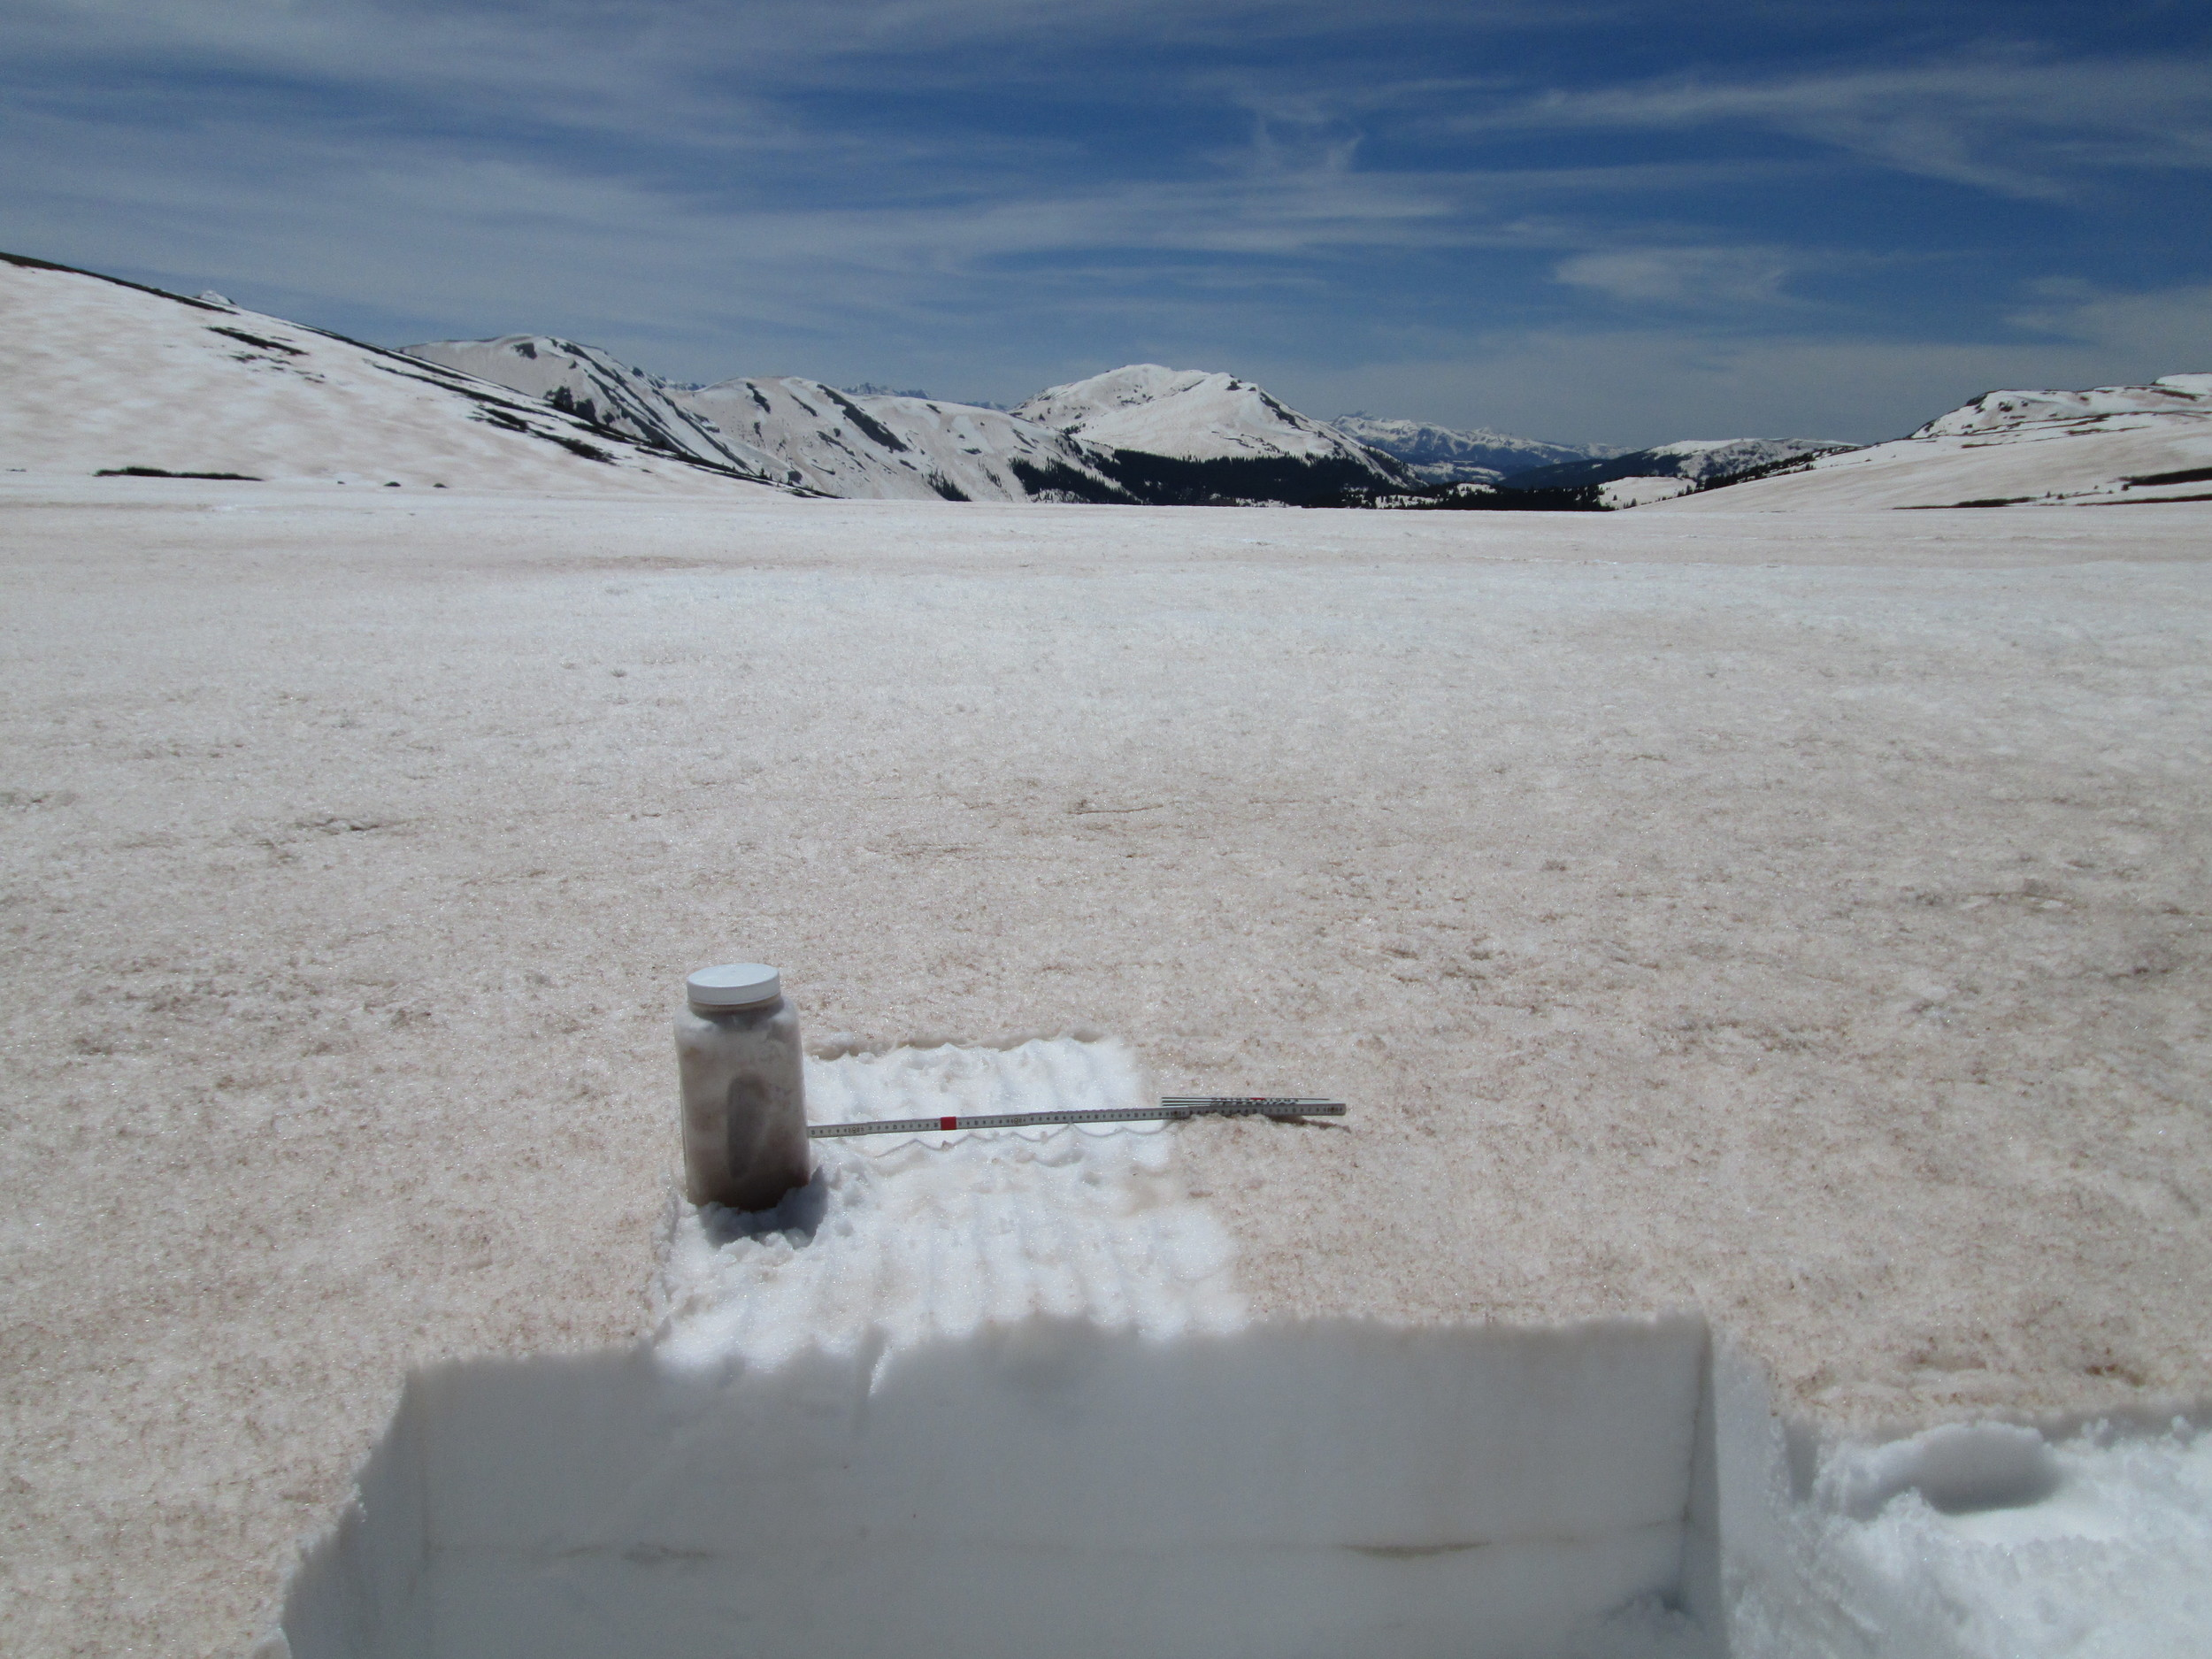 """Snowcover was still extensive on the tundra surrounding Independence Pass, here 24"""" deep. Dust deposition in such alpine terrain exhibits significant spatial variability resulting from wind effects on new snow containing dust., alternately stripping and concentrating dust (and wind-blown snow) in 'dune' fields. A typical dune pattern can be seen on the slope on the left, in the distance. An 'all layers merged' (ALM) sample was collected in a patch of somewhat higher concentration of dust (than seen just a few yard in the distance), since our purpose with these ALM samples is to facilitate analyses of the dust's properties rather than to capture a definitive dust mass loading sample. Representative mass loading samples require a well-sheltered site, such as our own Swamp Angel Study Plot at Senator Beck Basin, where wind effects are minimized."""